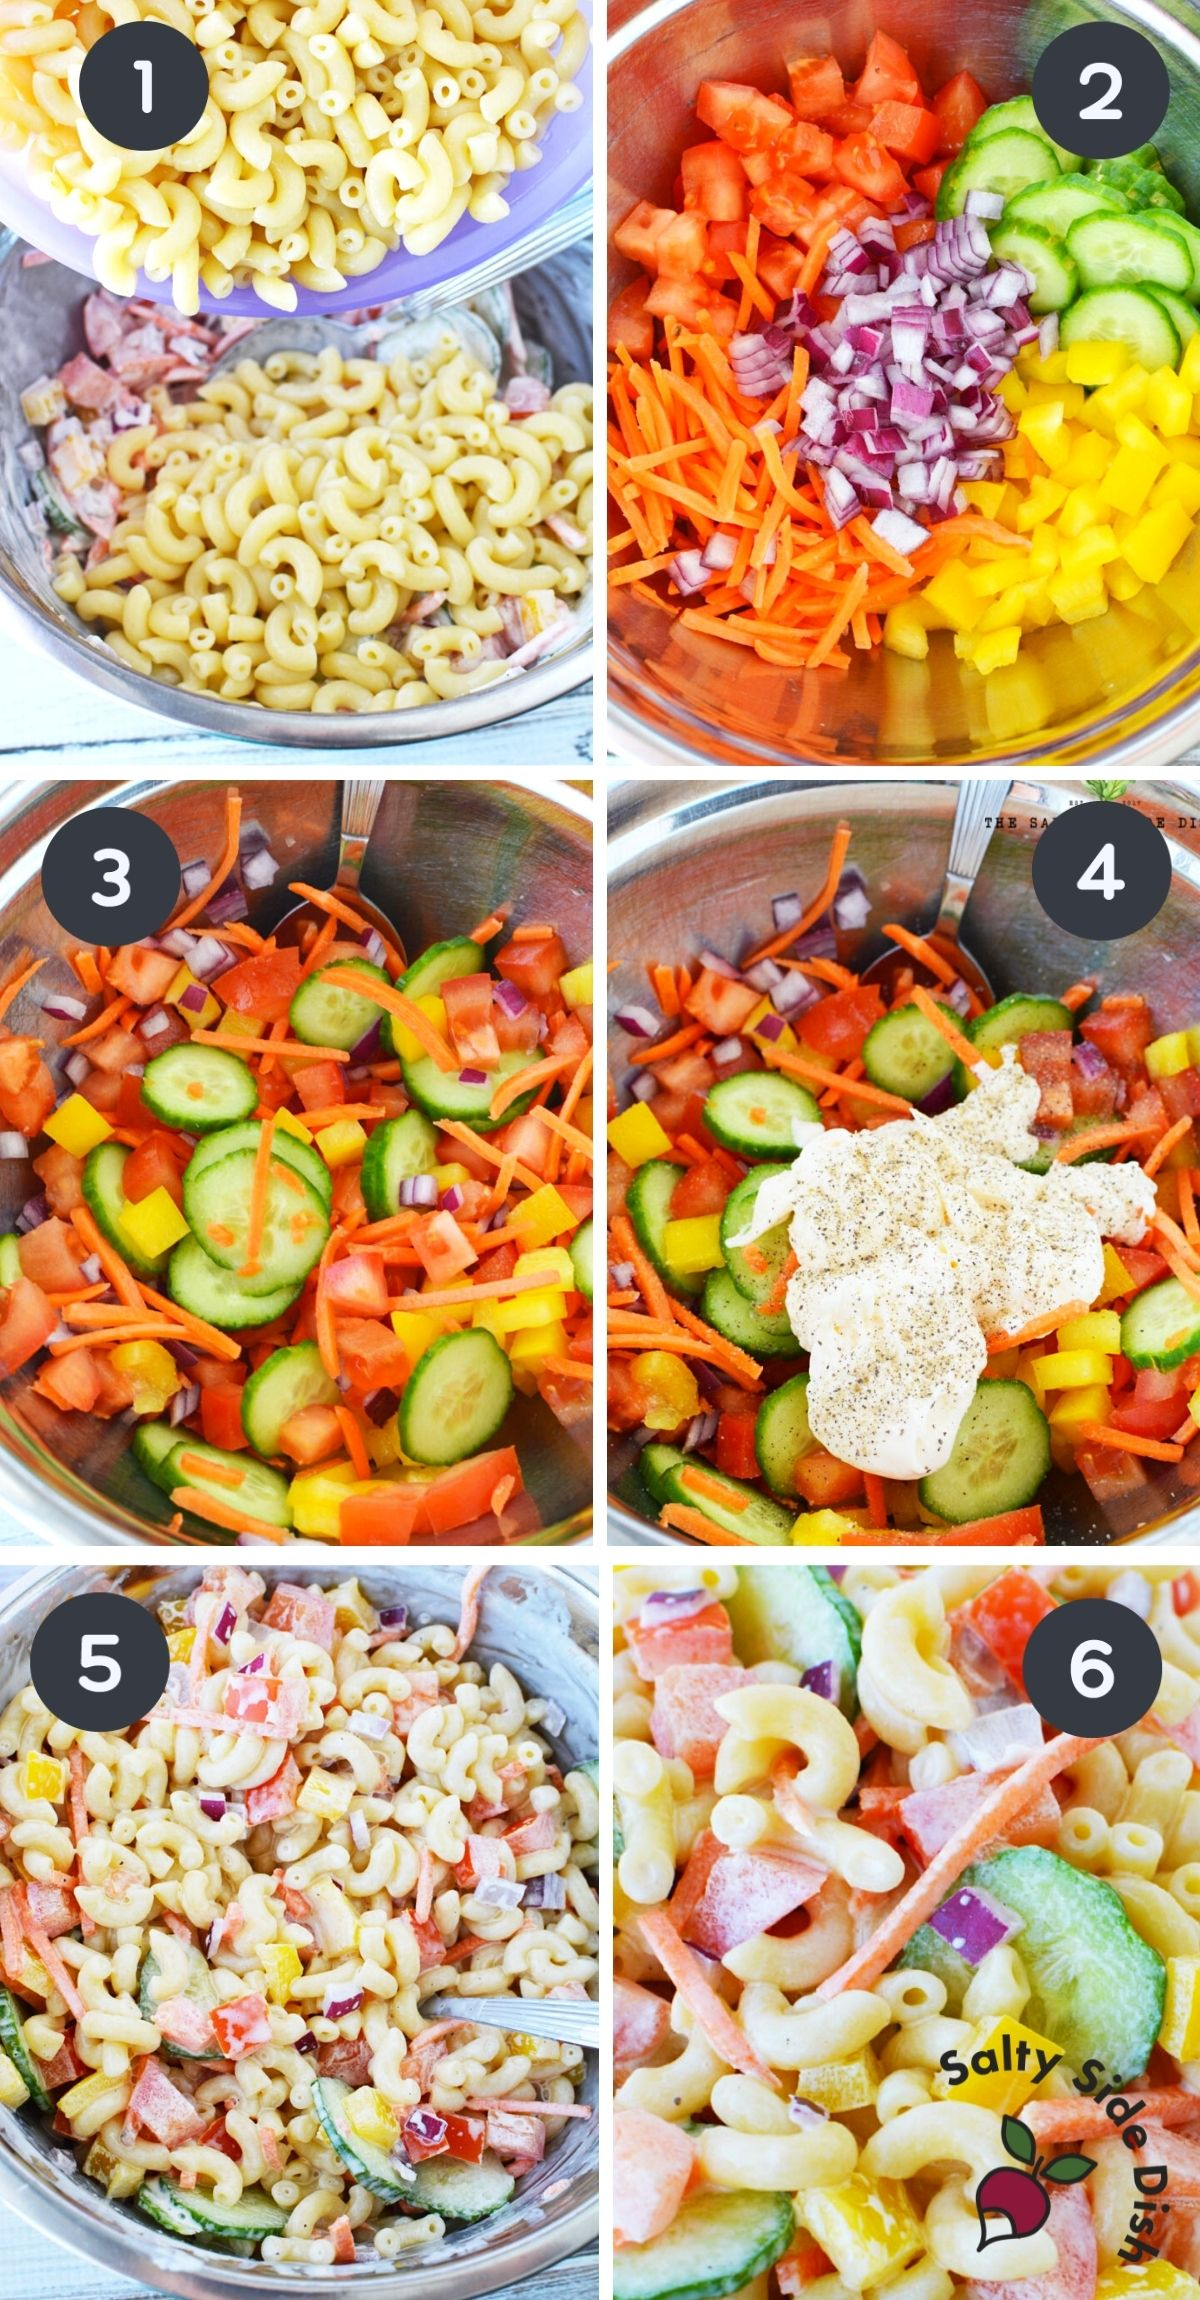 6 image collage of how to make cold vegetable macaroni pasta salad.